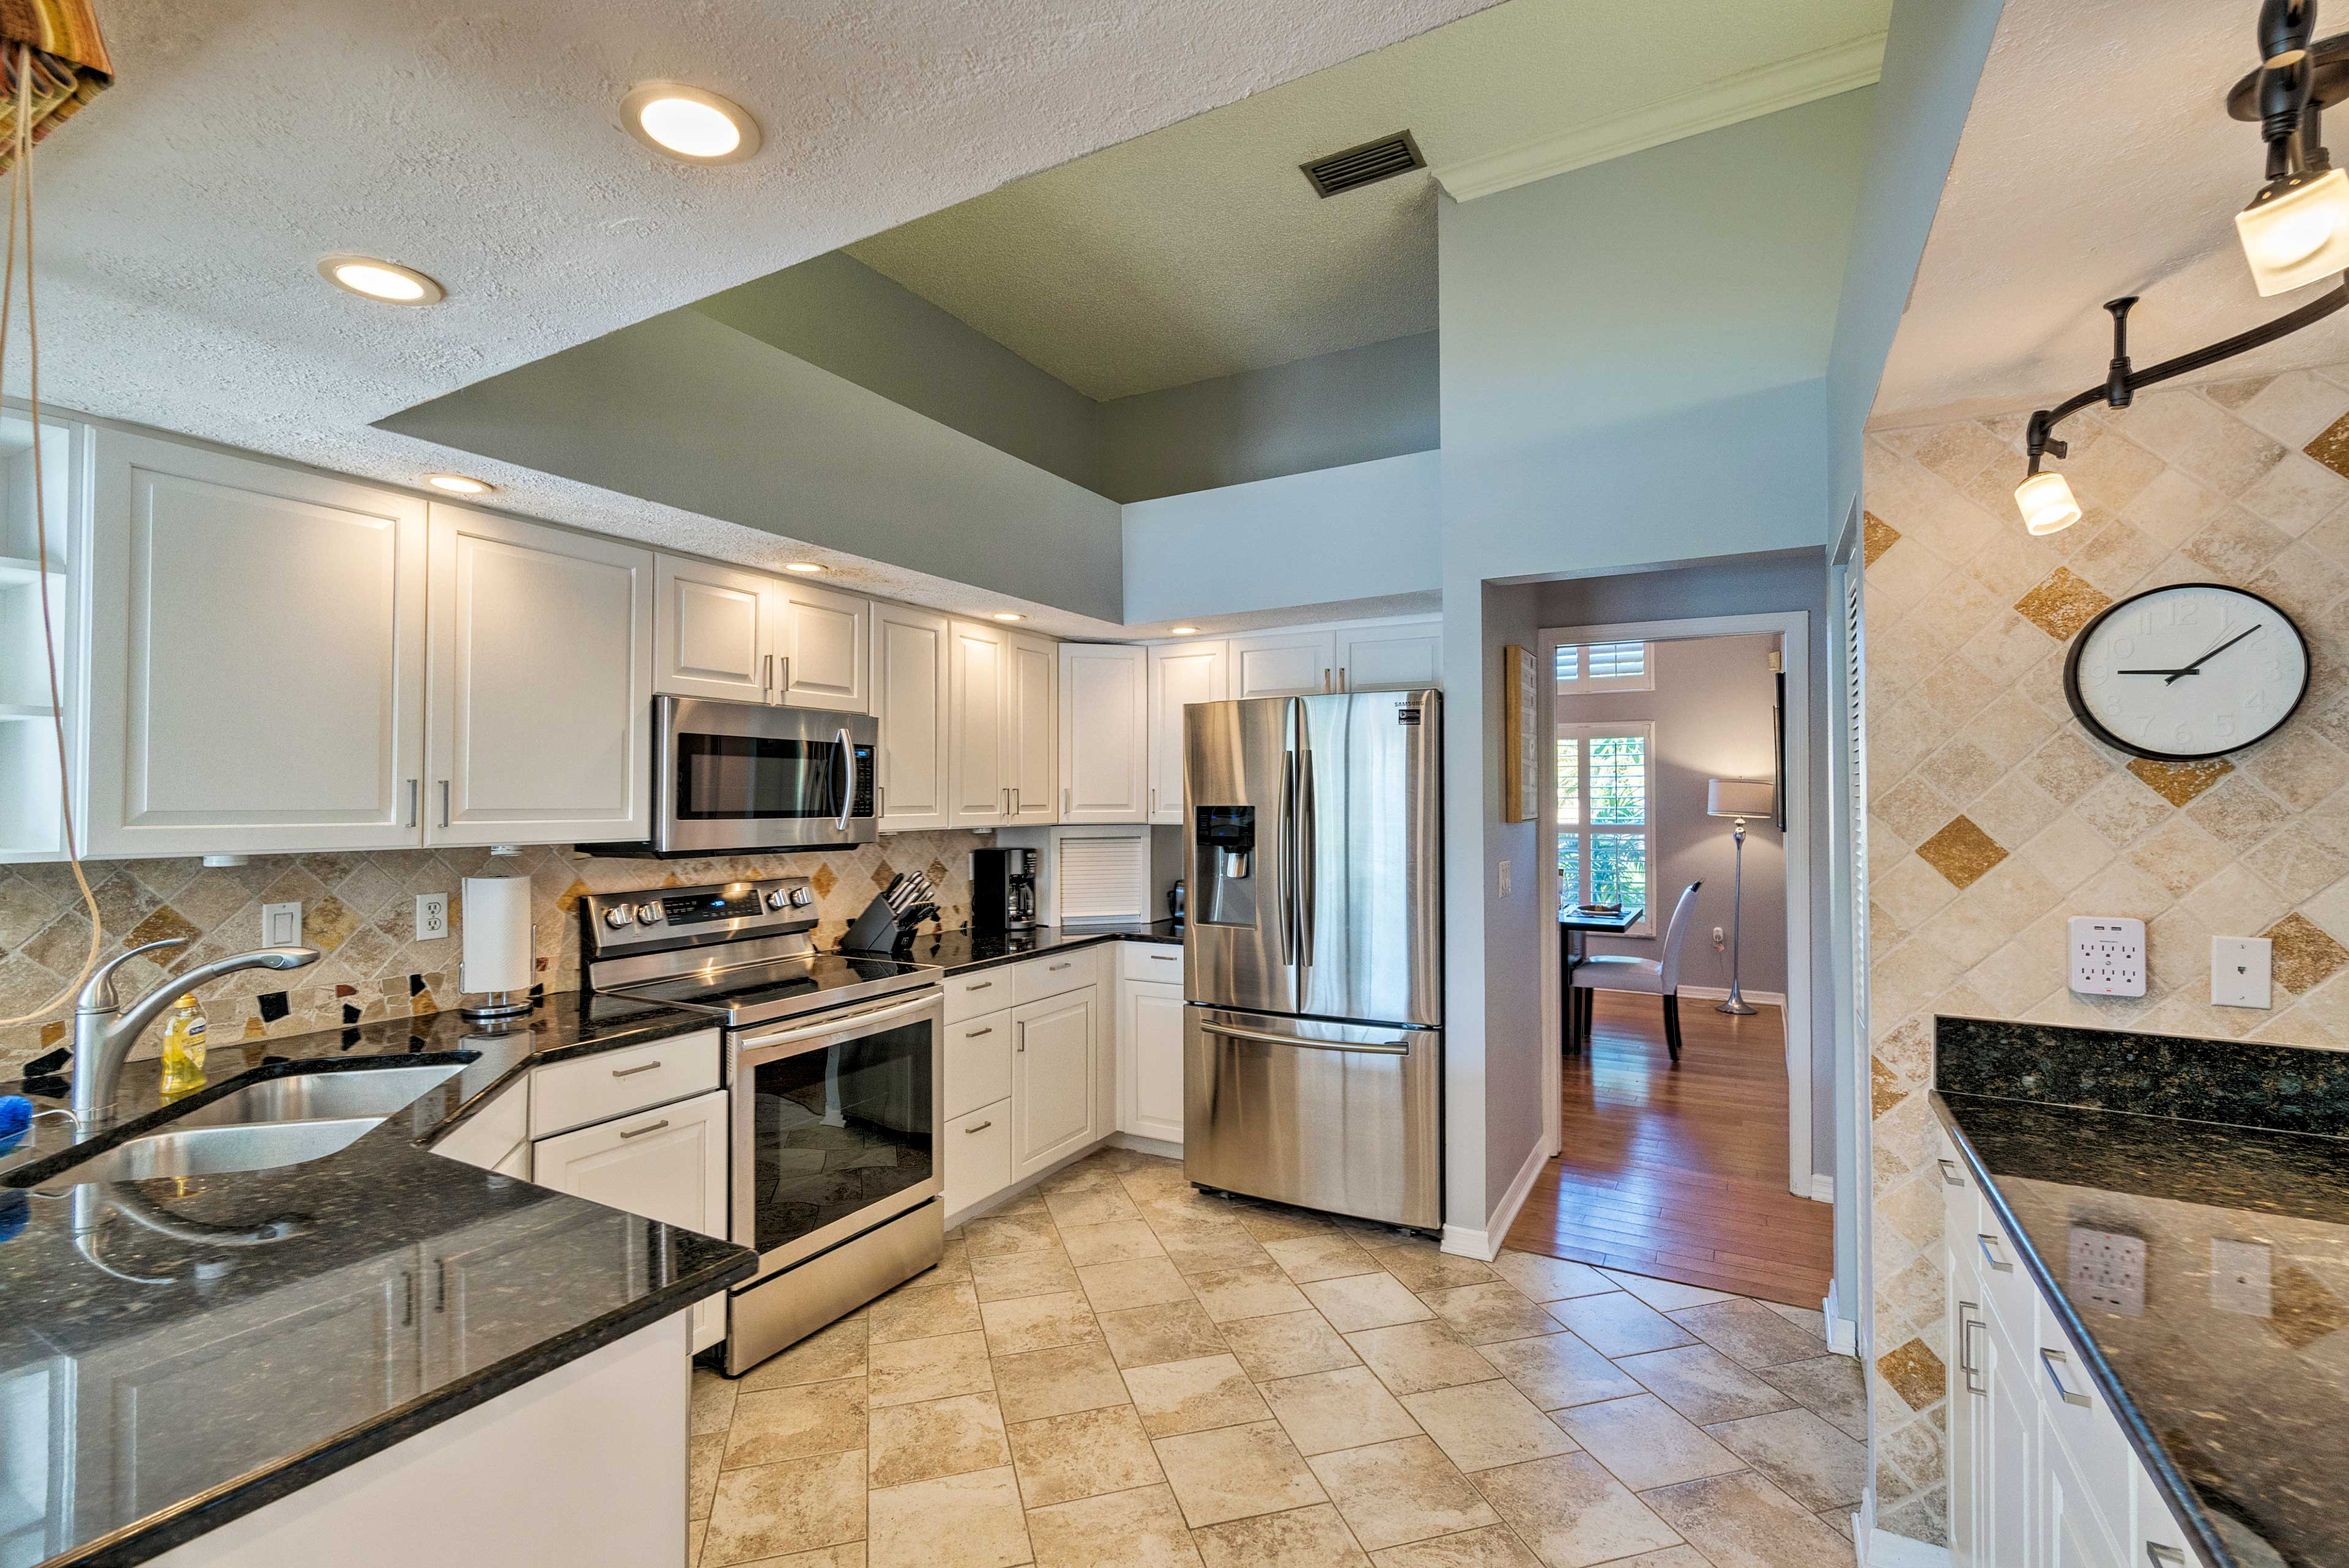 Granite countertops and stainless steel appliances elevate this kitchen.